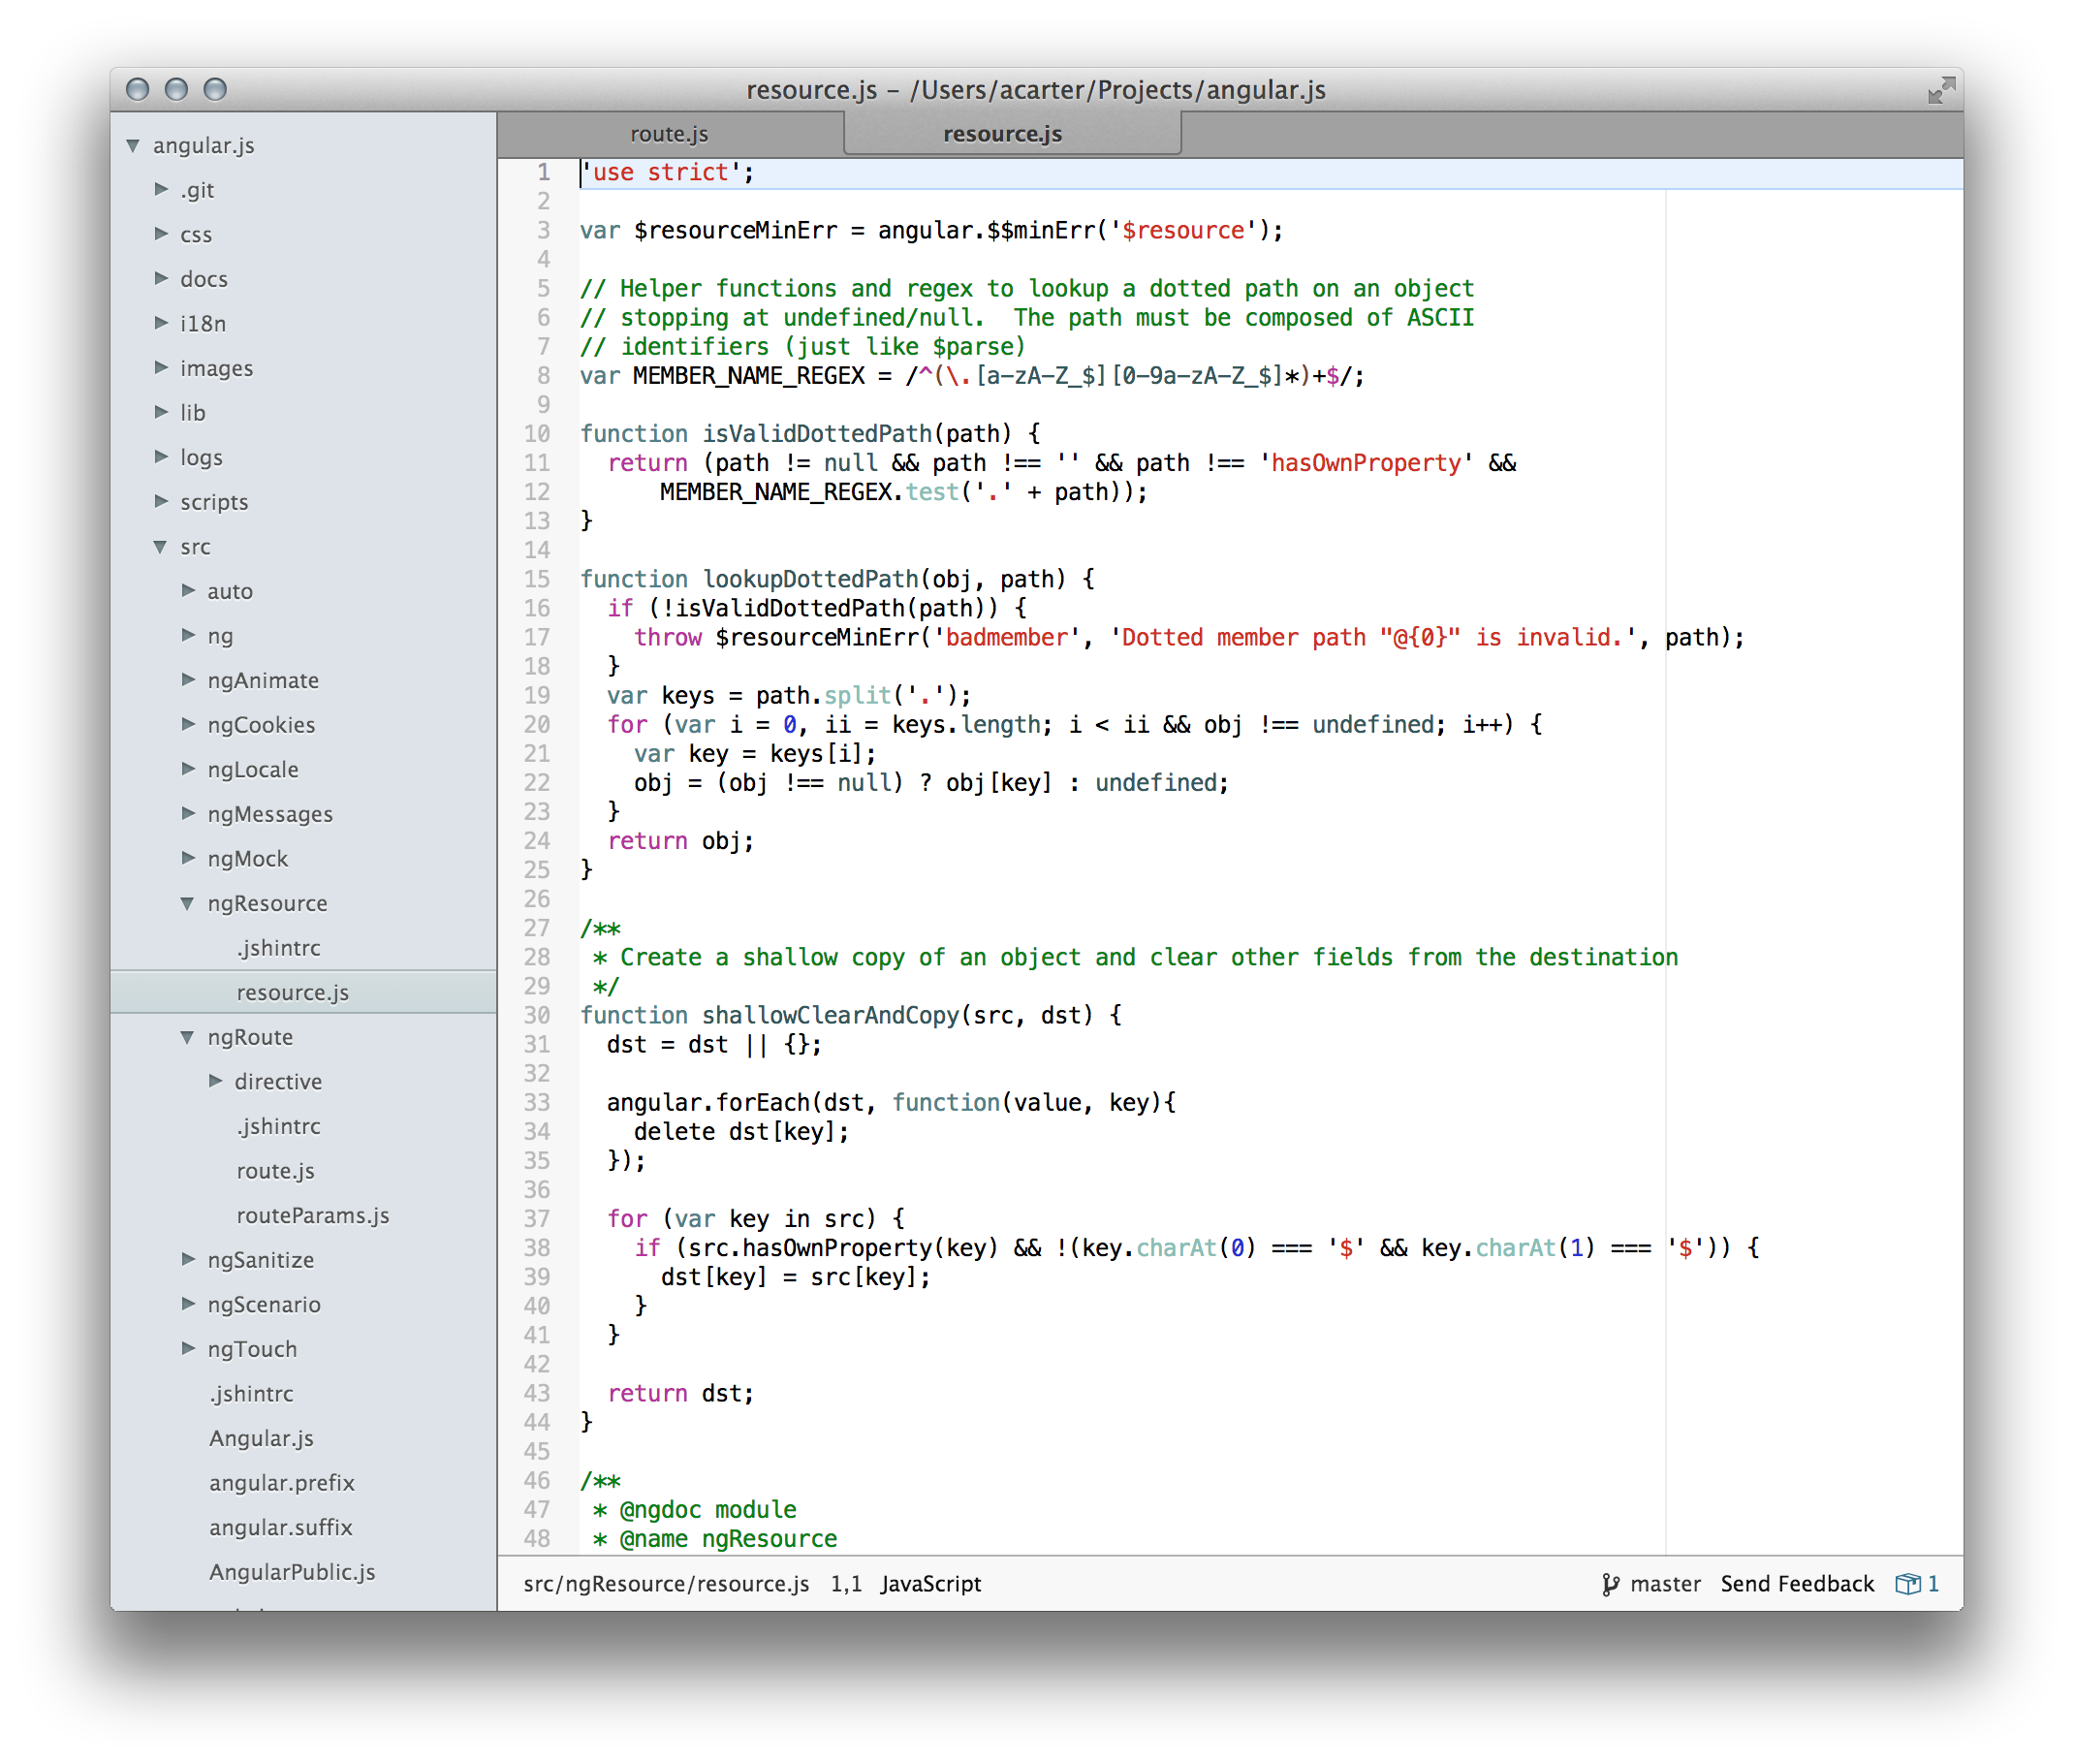 Xcode Syntax Preview